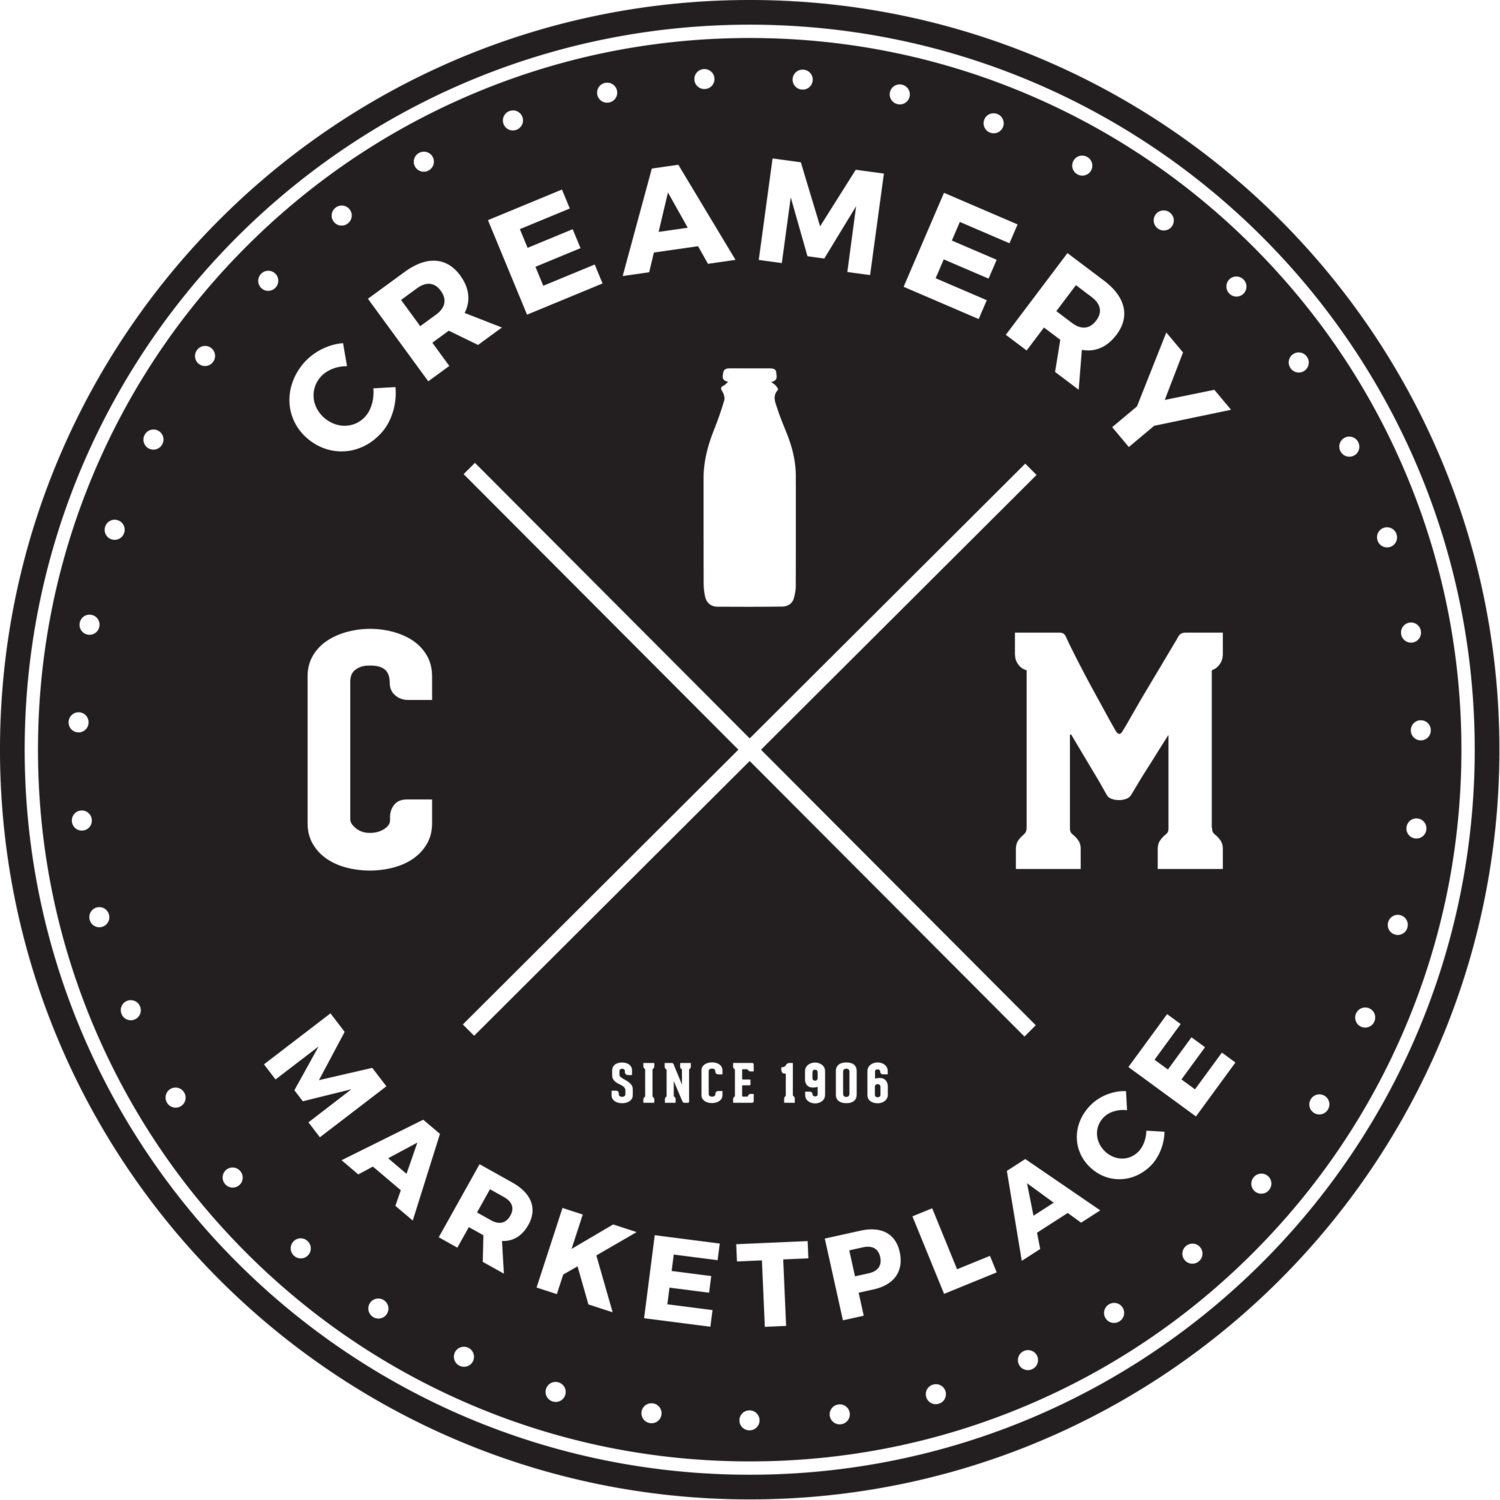 CREAMERY MARKETPLACE